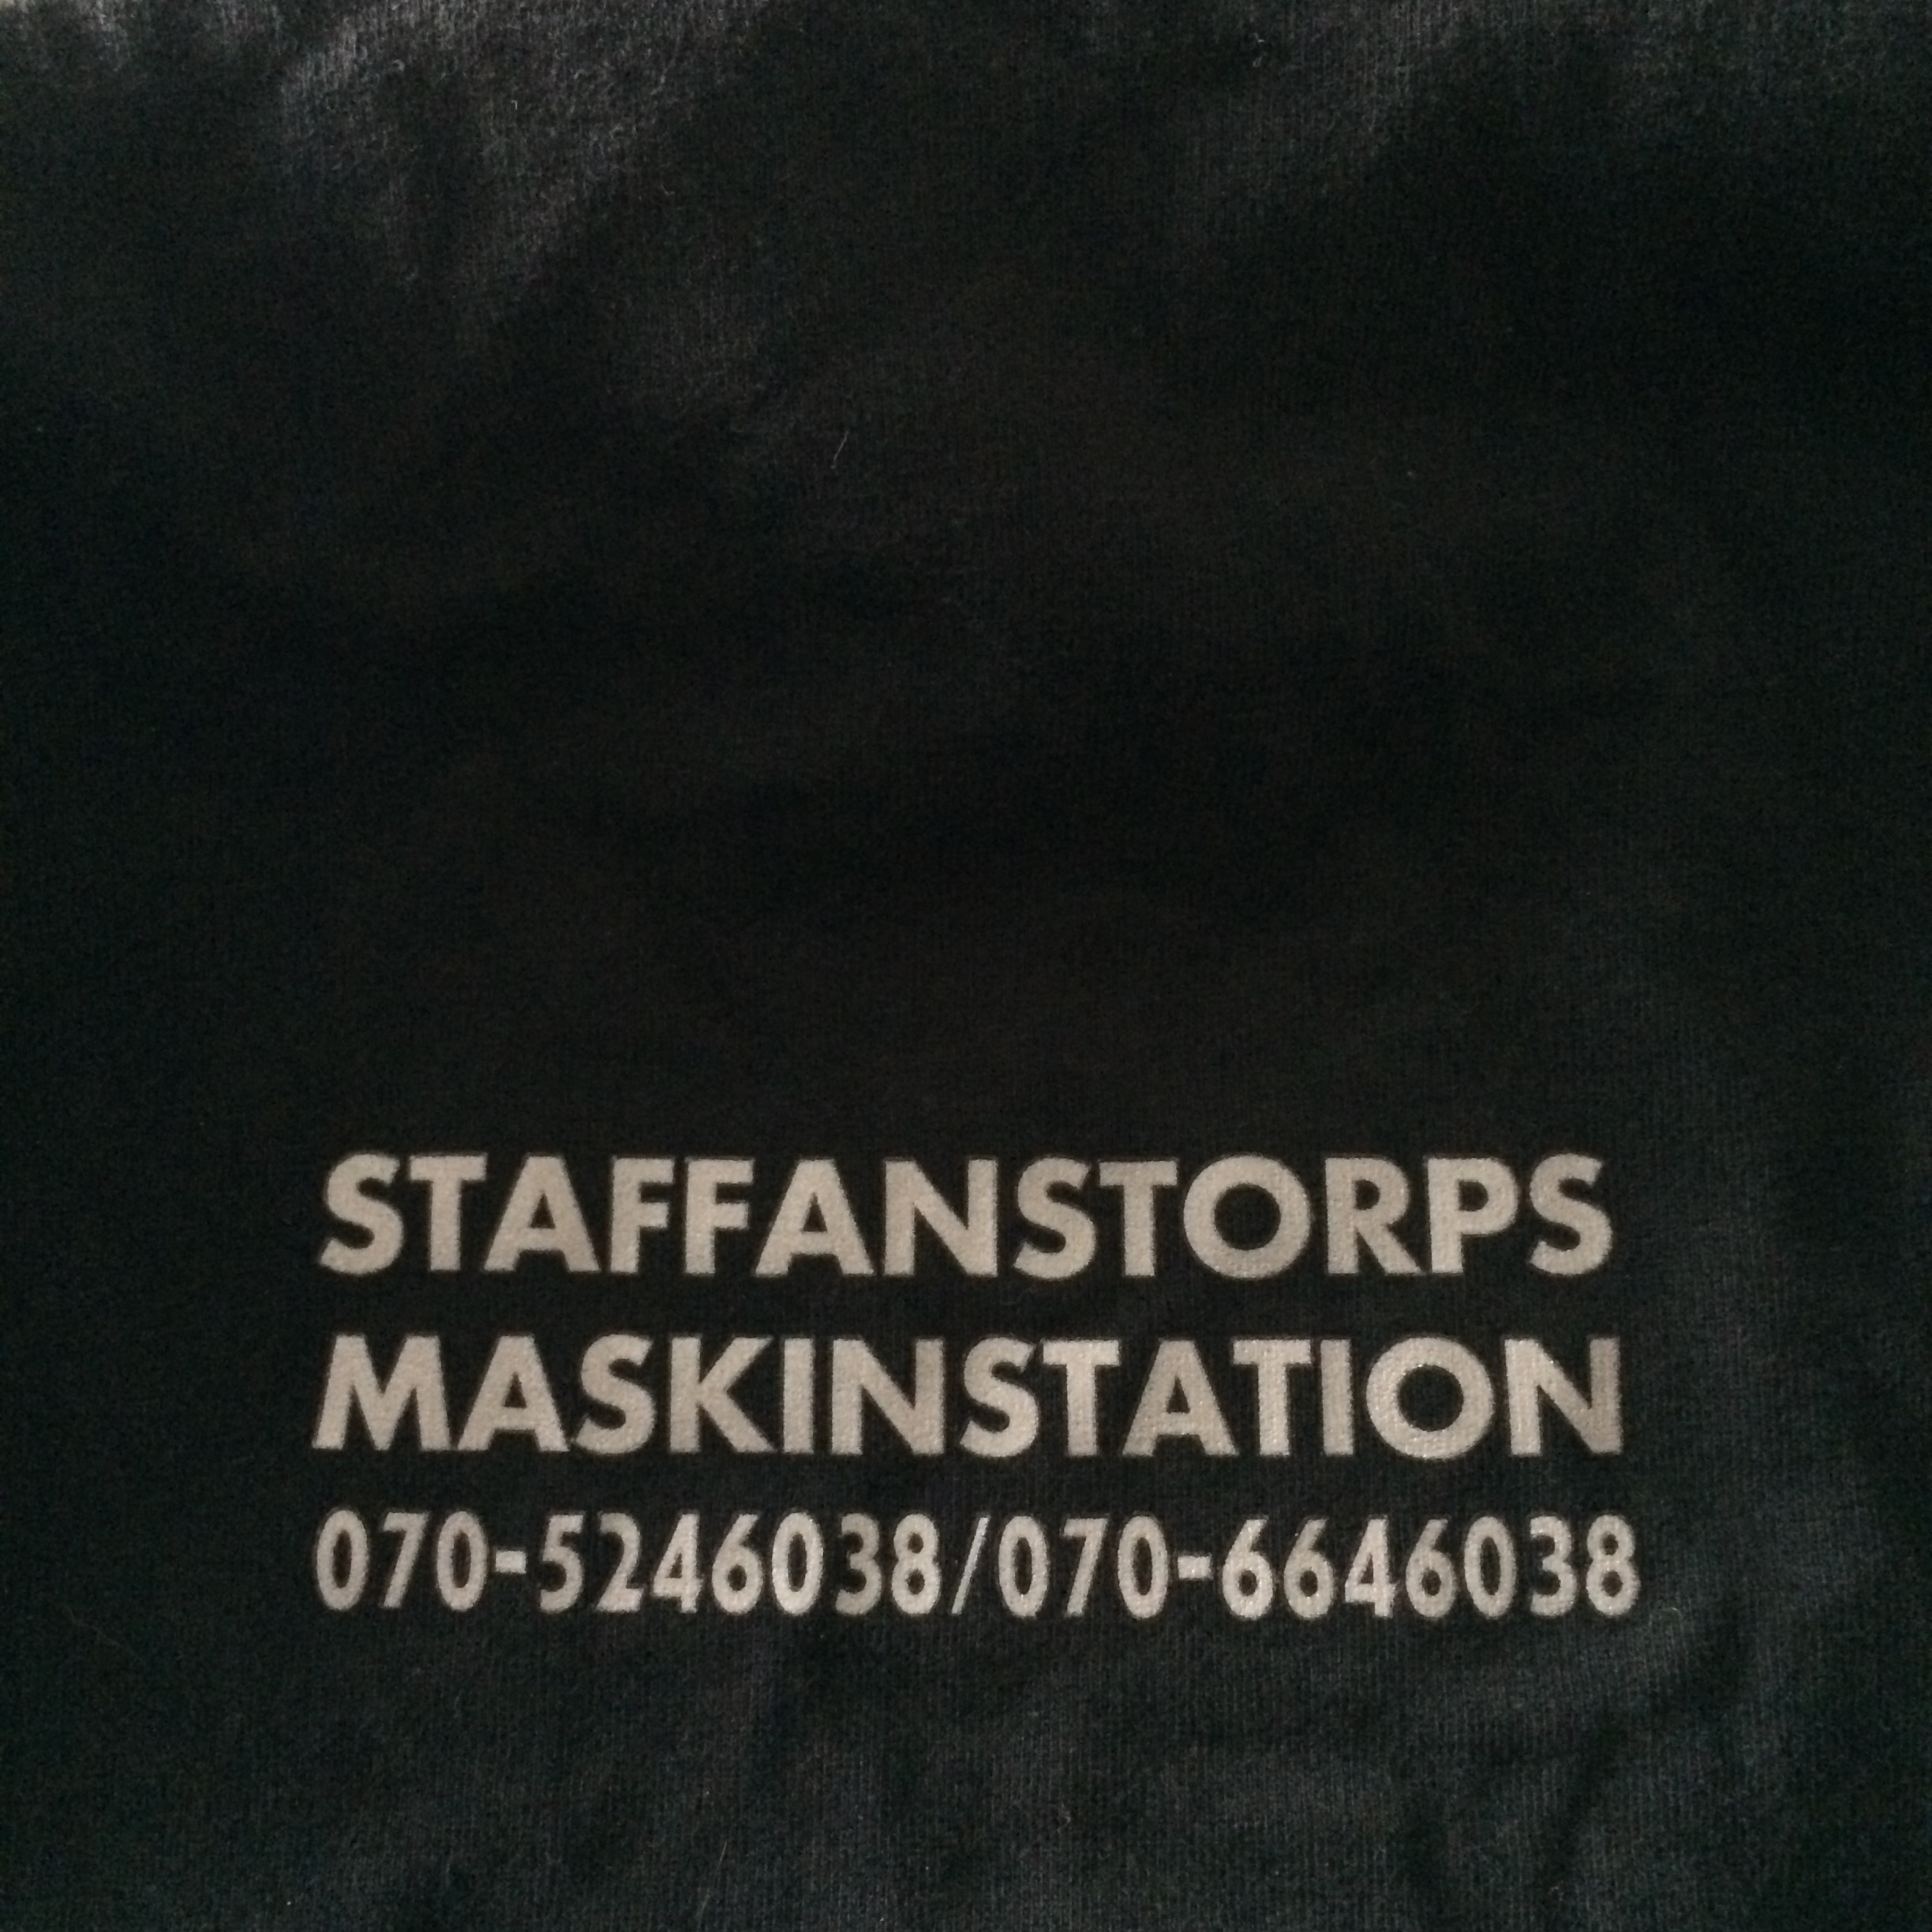 Staffanstorps Maskinstation